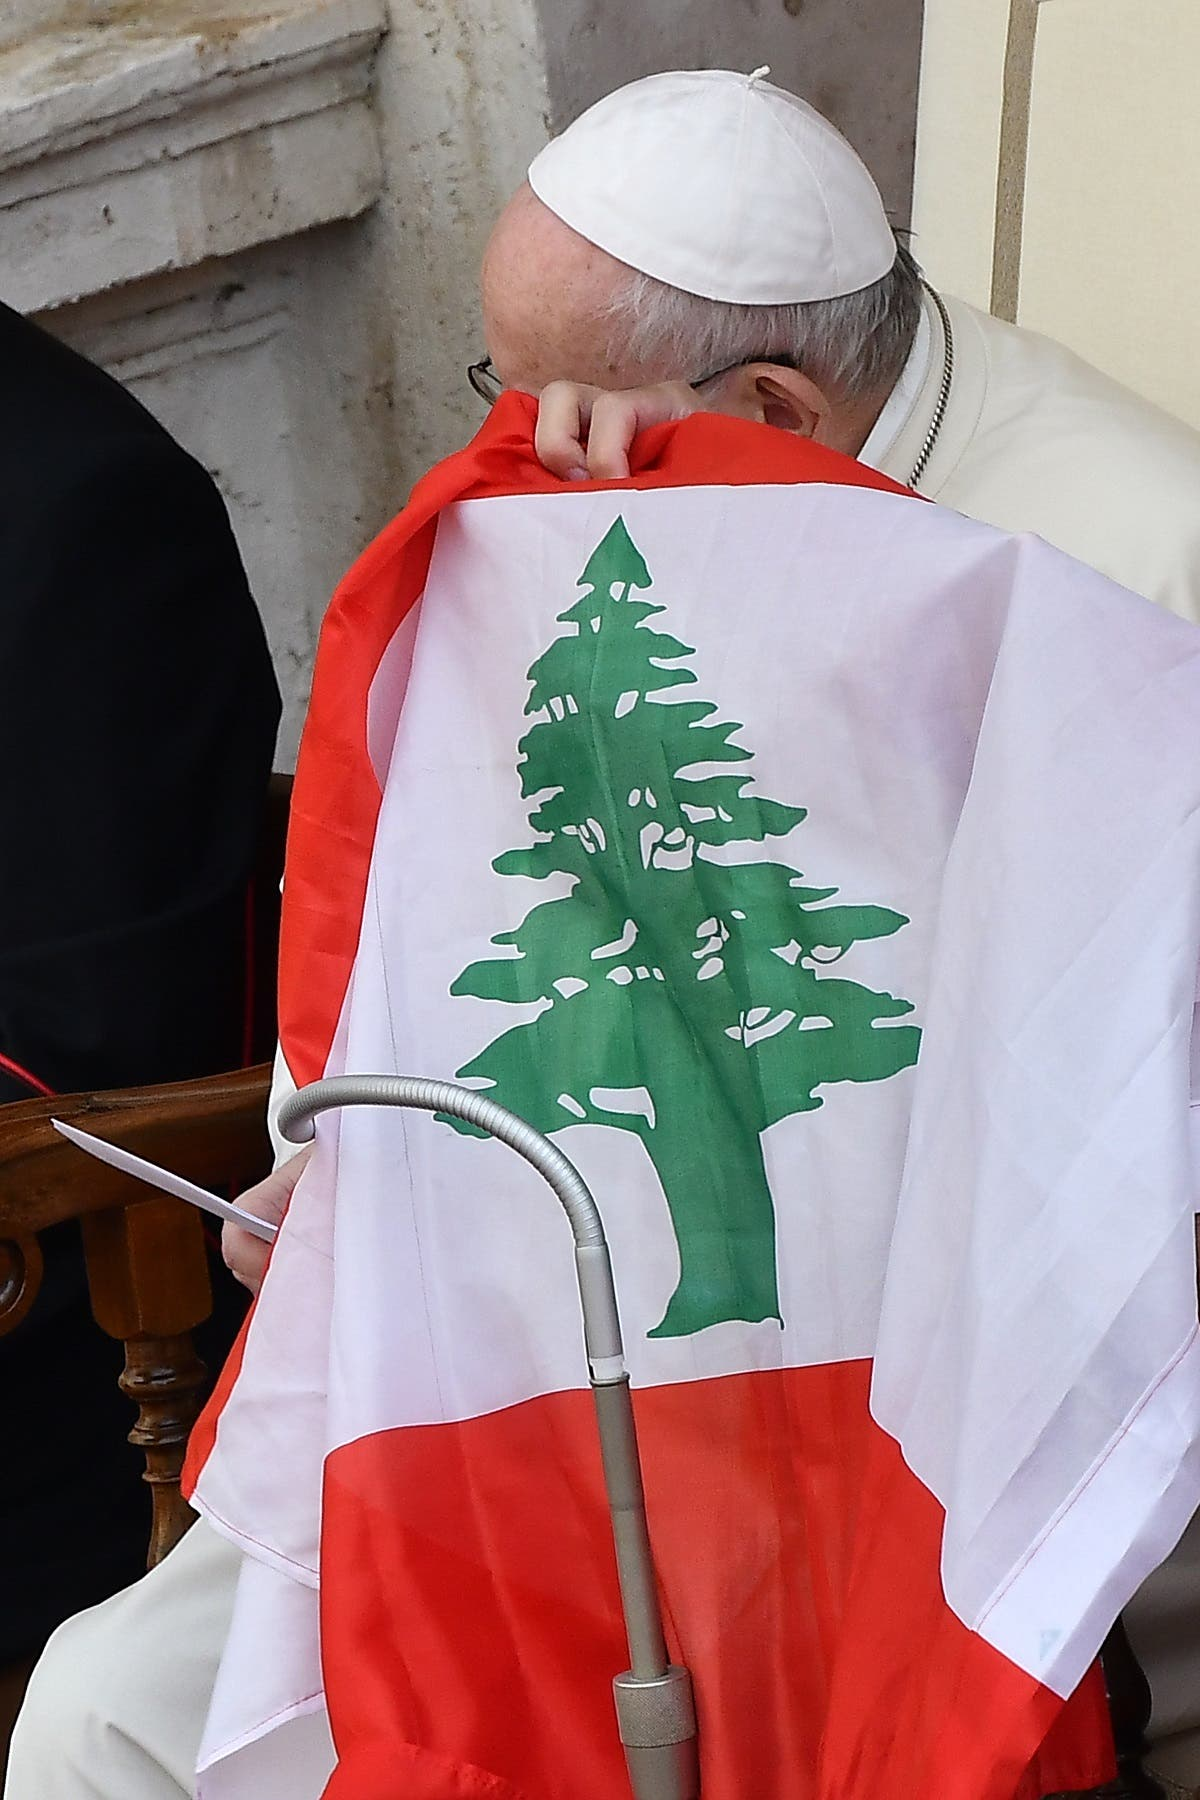 Pope Francis holds Lebanon's flag as he makes a statement about the situation in the country, during a limited public audience at the San Damaso courtyard in The Vatican, Sept. 2, 2020. (AFP)